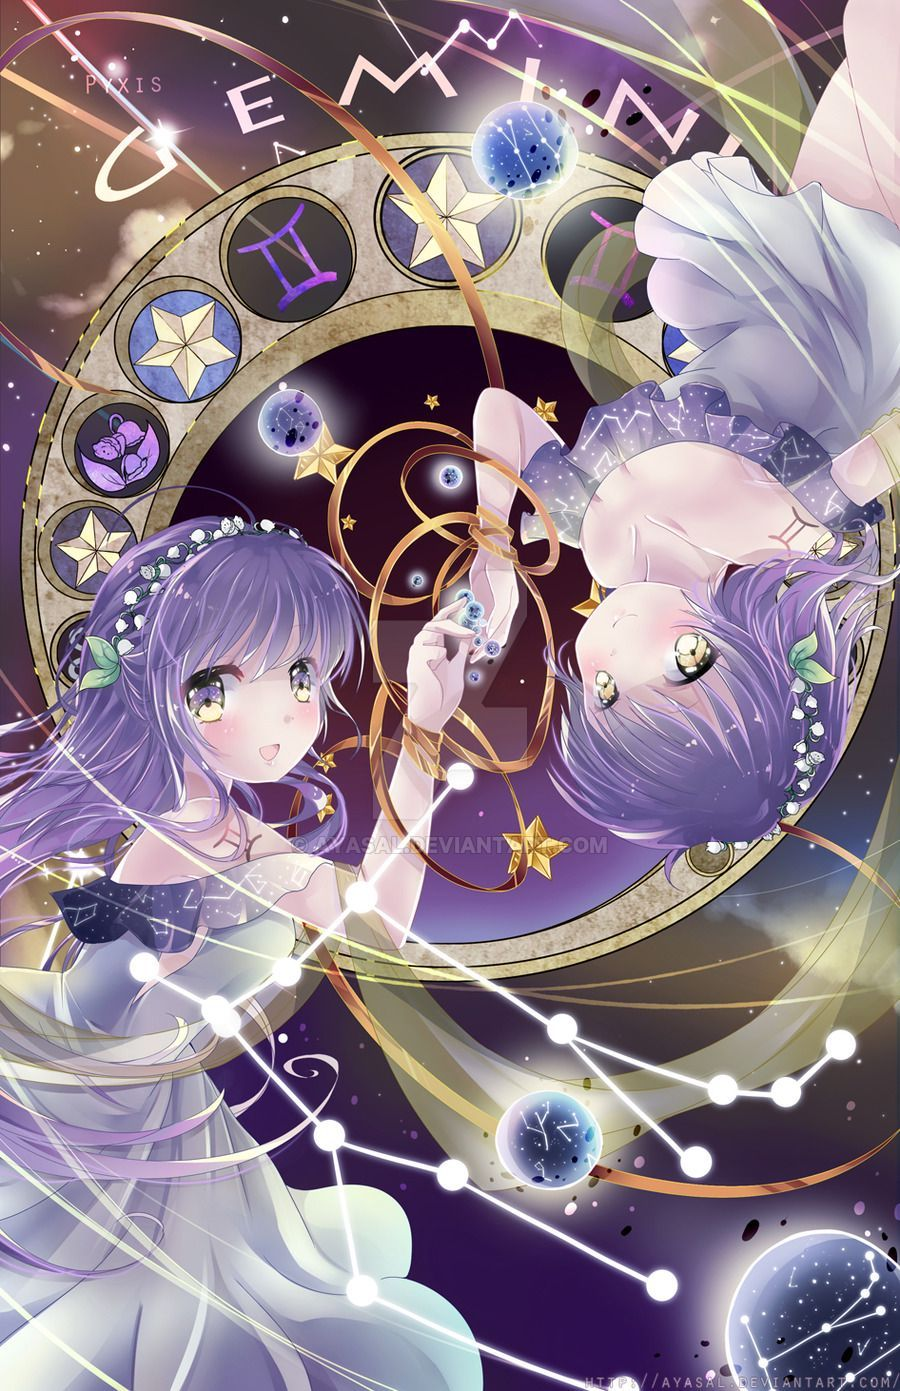 Anime Zodiac Signs In 2020 Anime Zodiac Anime Zodiac Signs